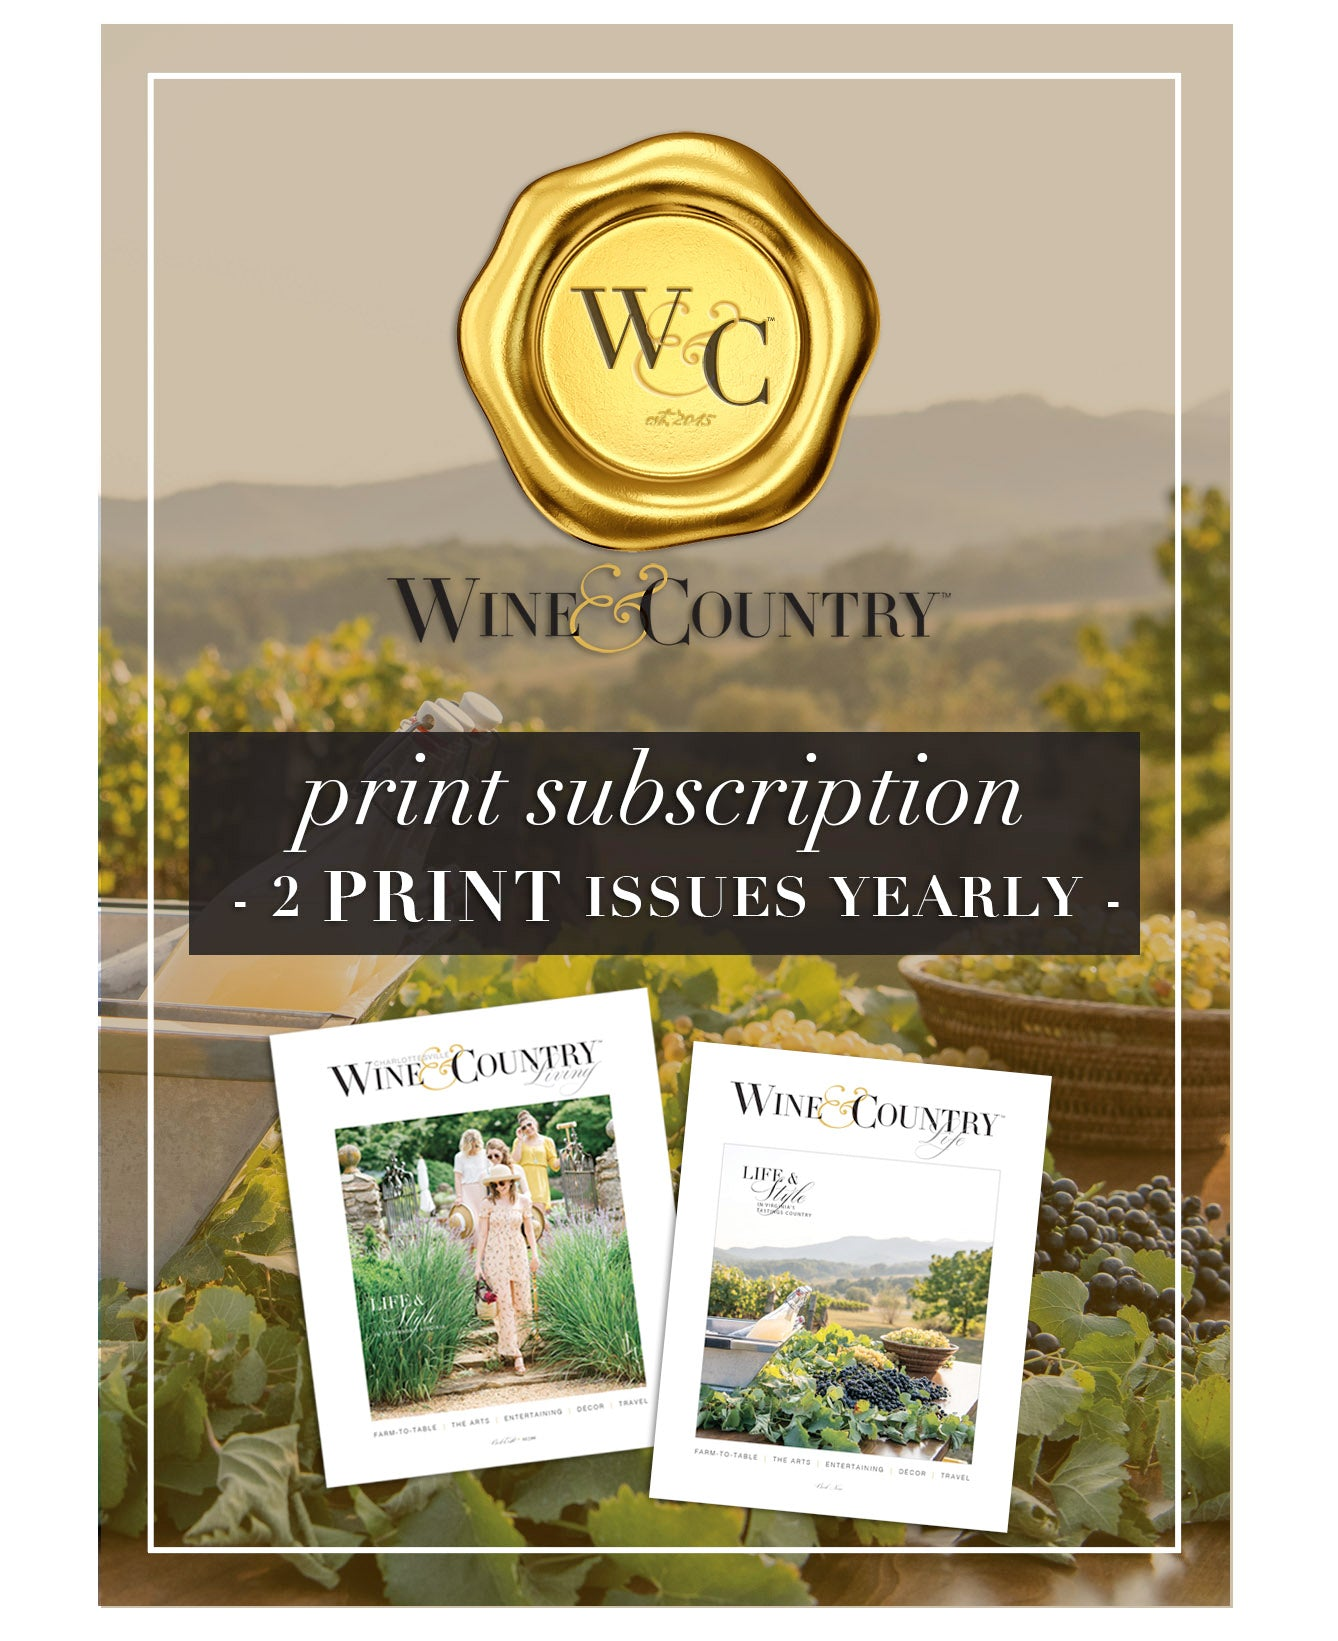 W&C LIFE SUBSCRIPTION - PRINT